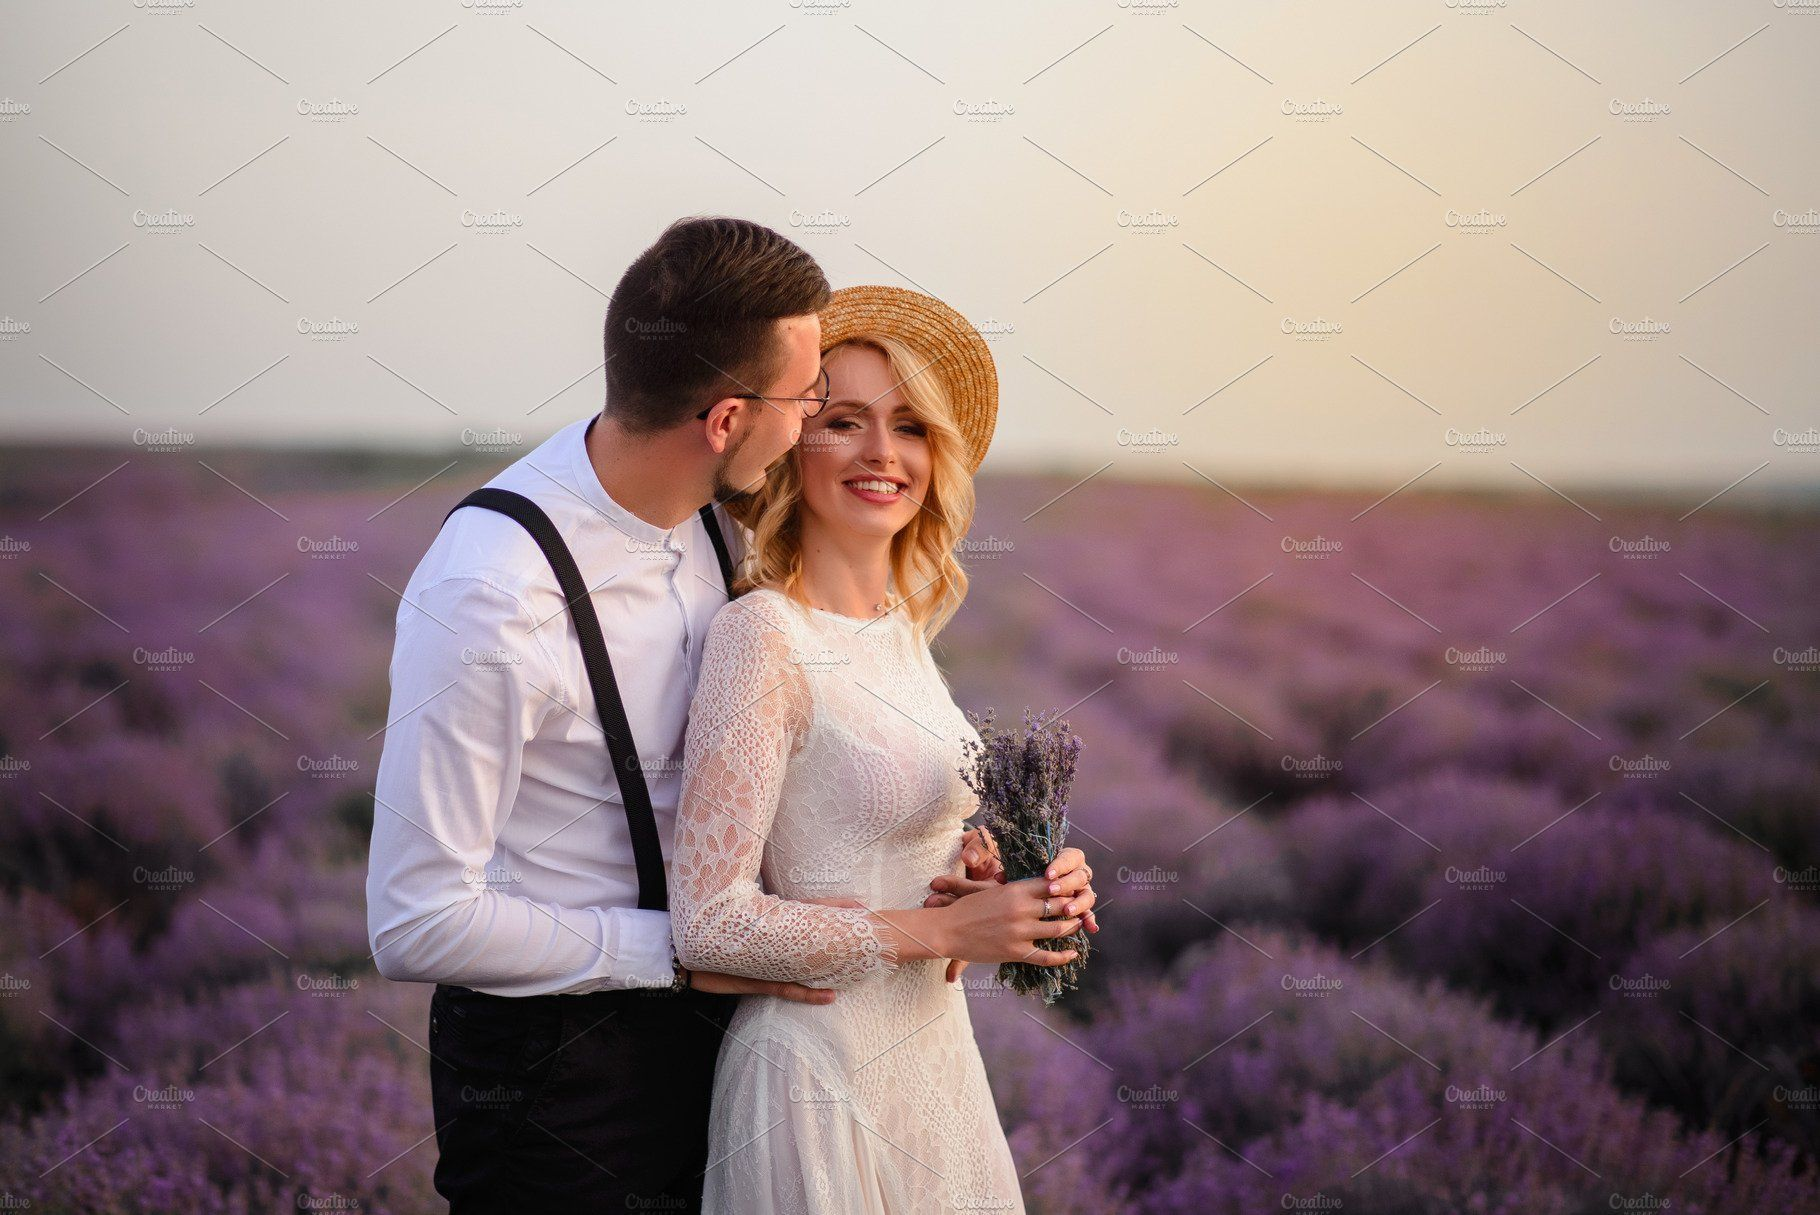 Young Happy Bride And Groom Hugging Romantic Bride Wedding Photography Bride Bride And Groom Pictures